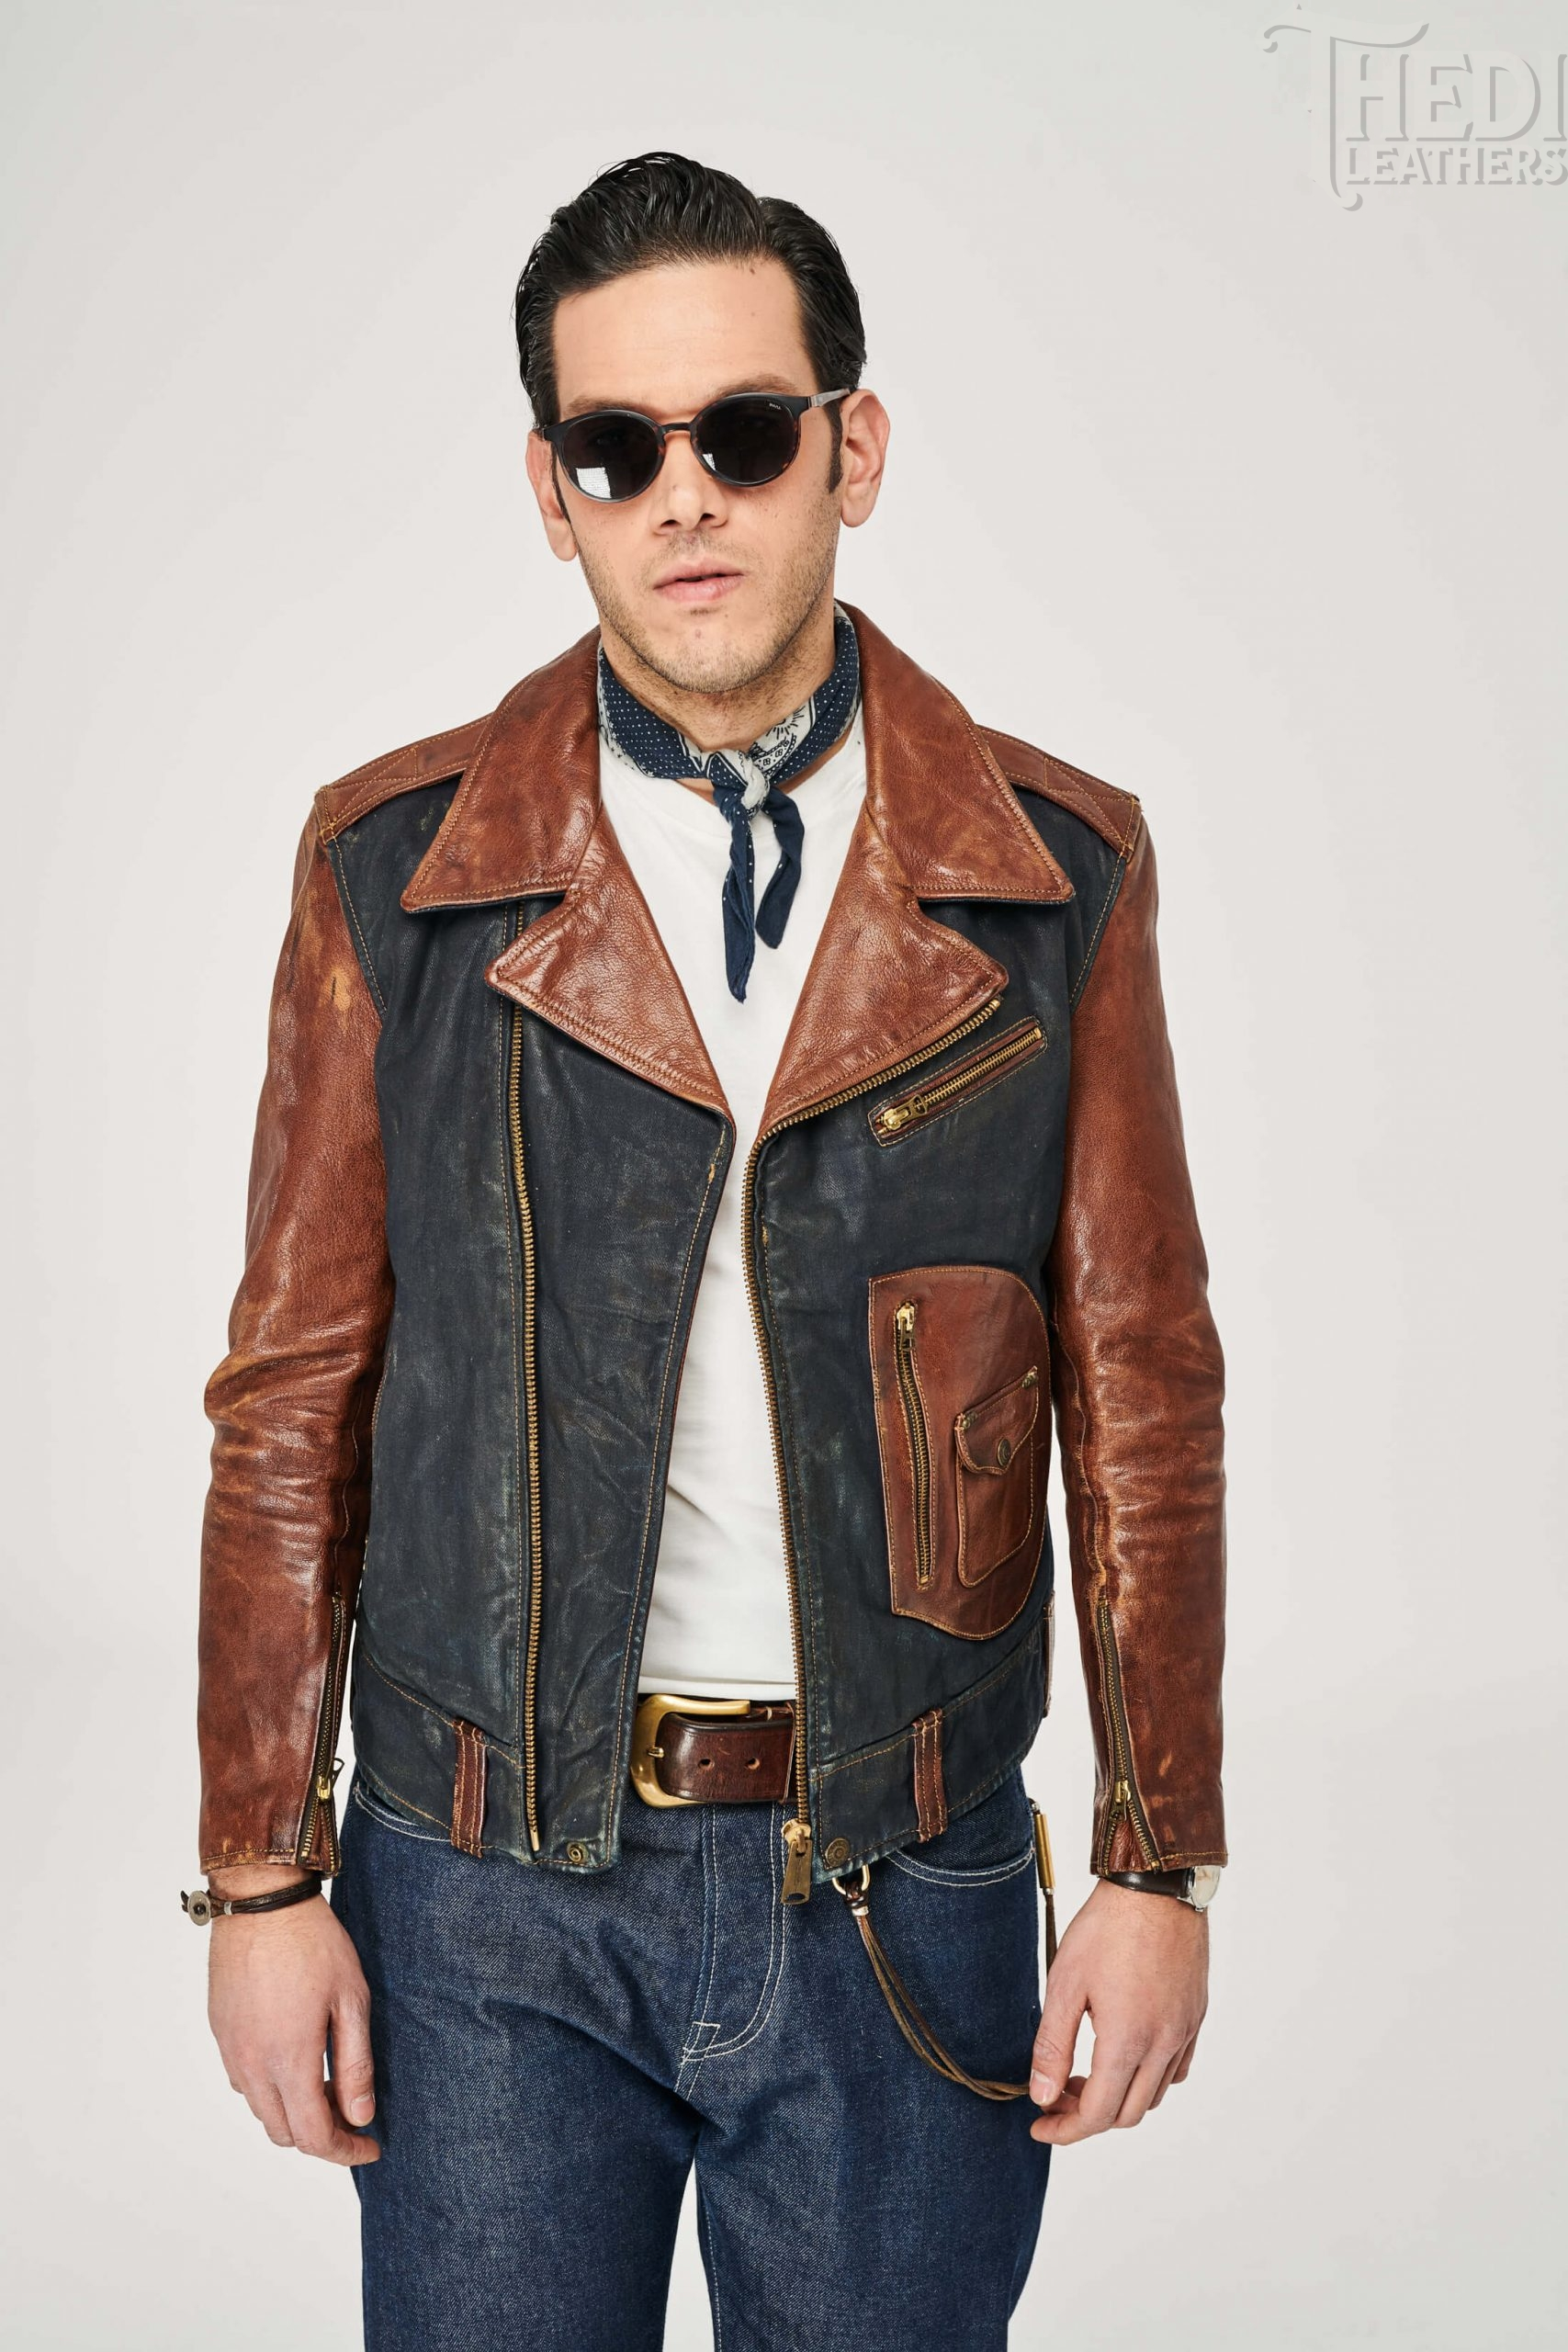 https://thedi-leathers.com/wp-content/uploads/2019/10/MTCD-12898-FRONT1-scaled.jpg